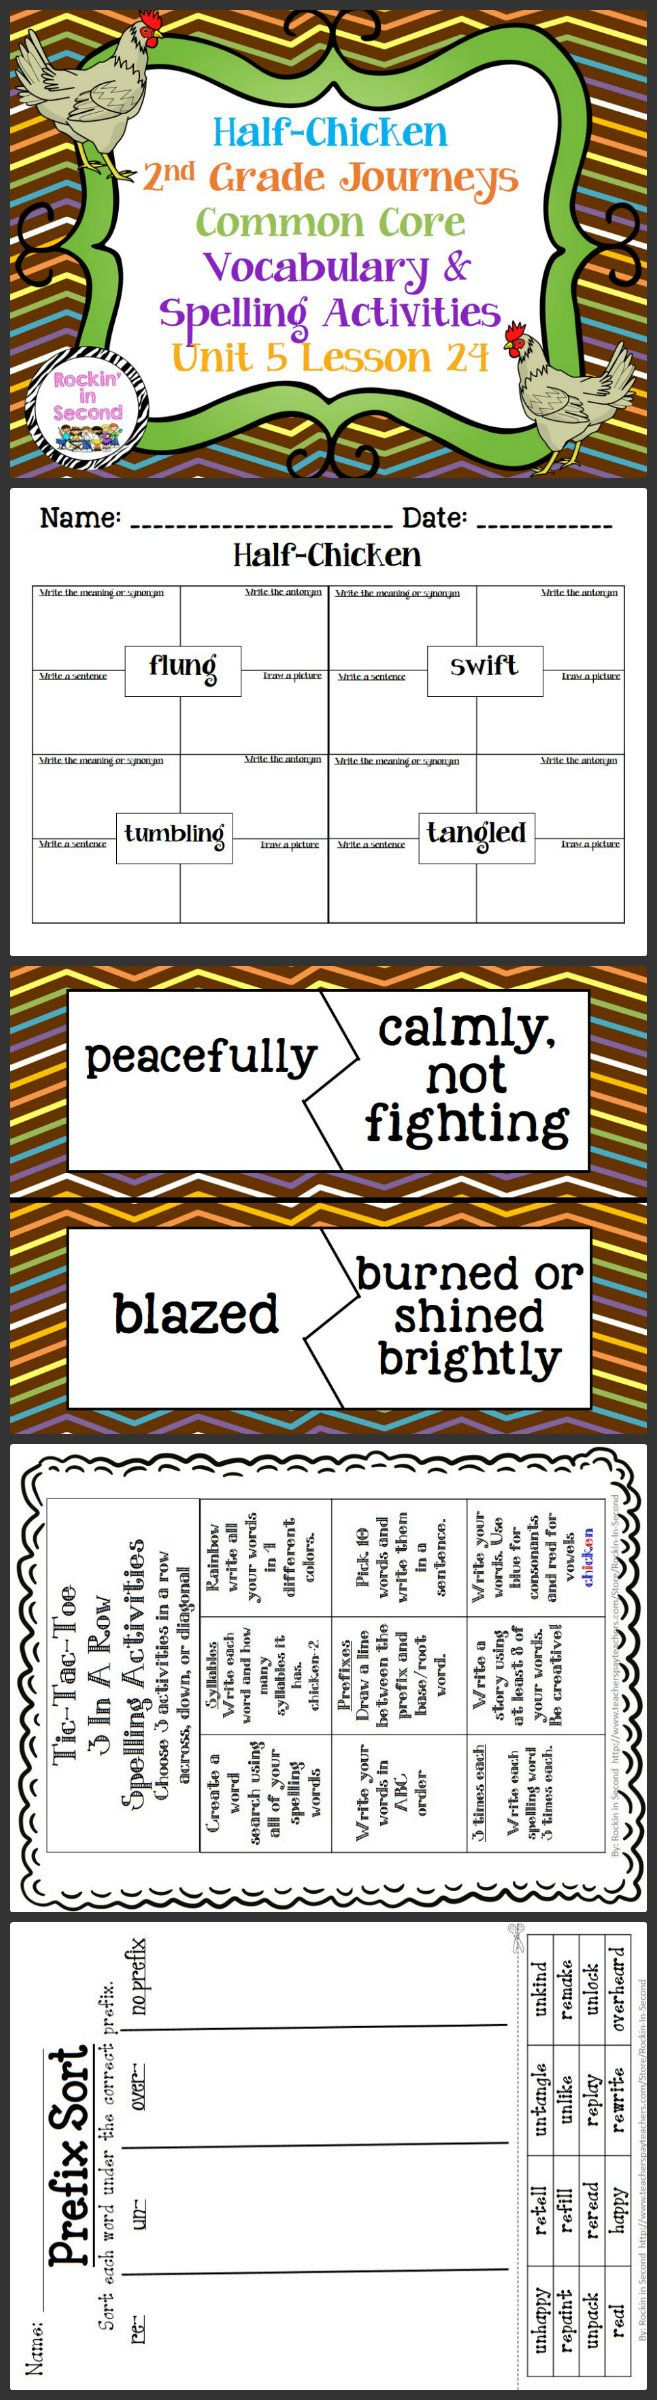 Journeys Half-Chicken Lesson 24 Spelling & Vocab. Activities  In this bundle you will receive Vocabulary Puzzles, Vocabulary 4 square sheets, Spelling lists for student's agendas, Tic-Tac-Toe spelling activity, Spelling Sort, and Rainbow Write spelling paper.  These all are aligned with Common Core and goes along with Journeys.